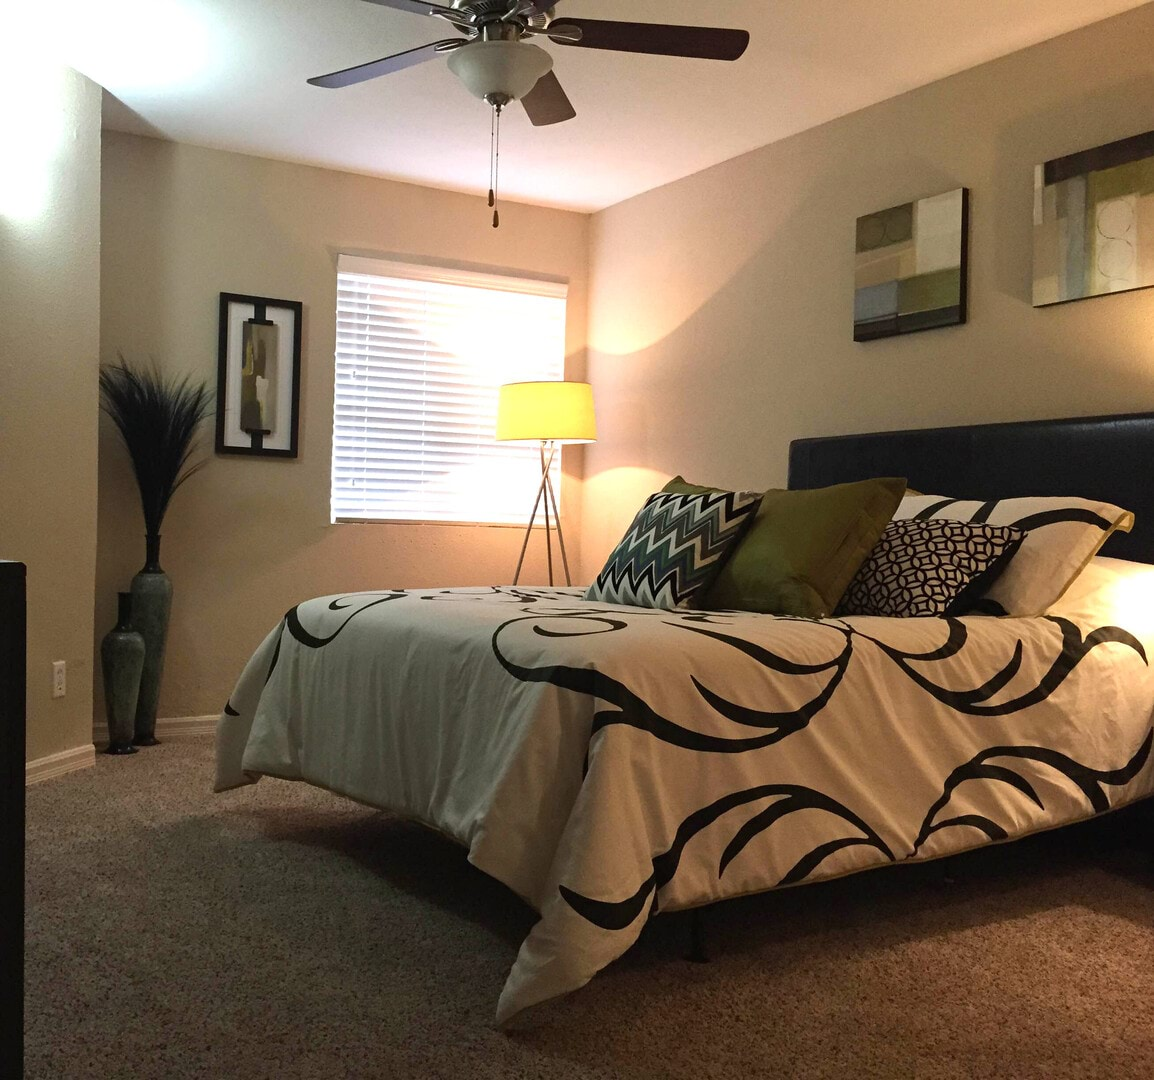 Photos Of Waterford Downs Apartments In Creve Coeur, MO